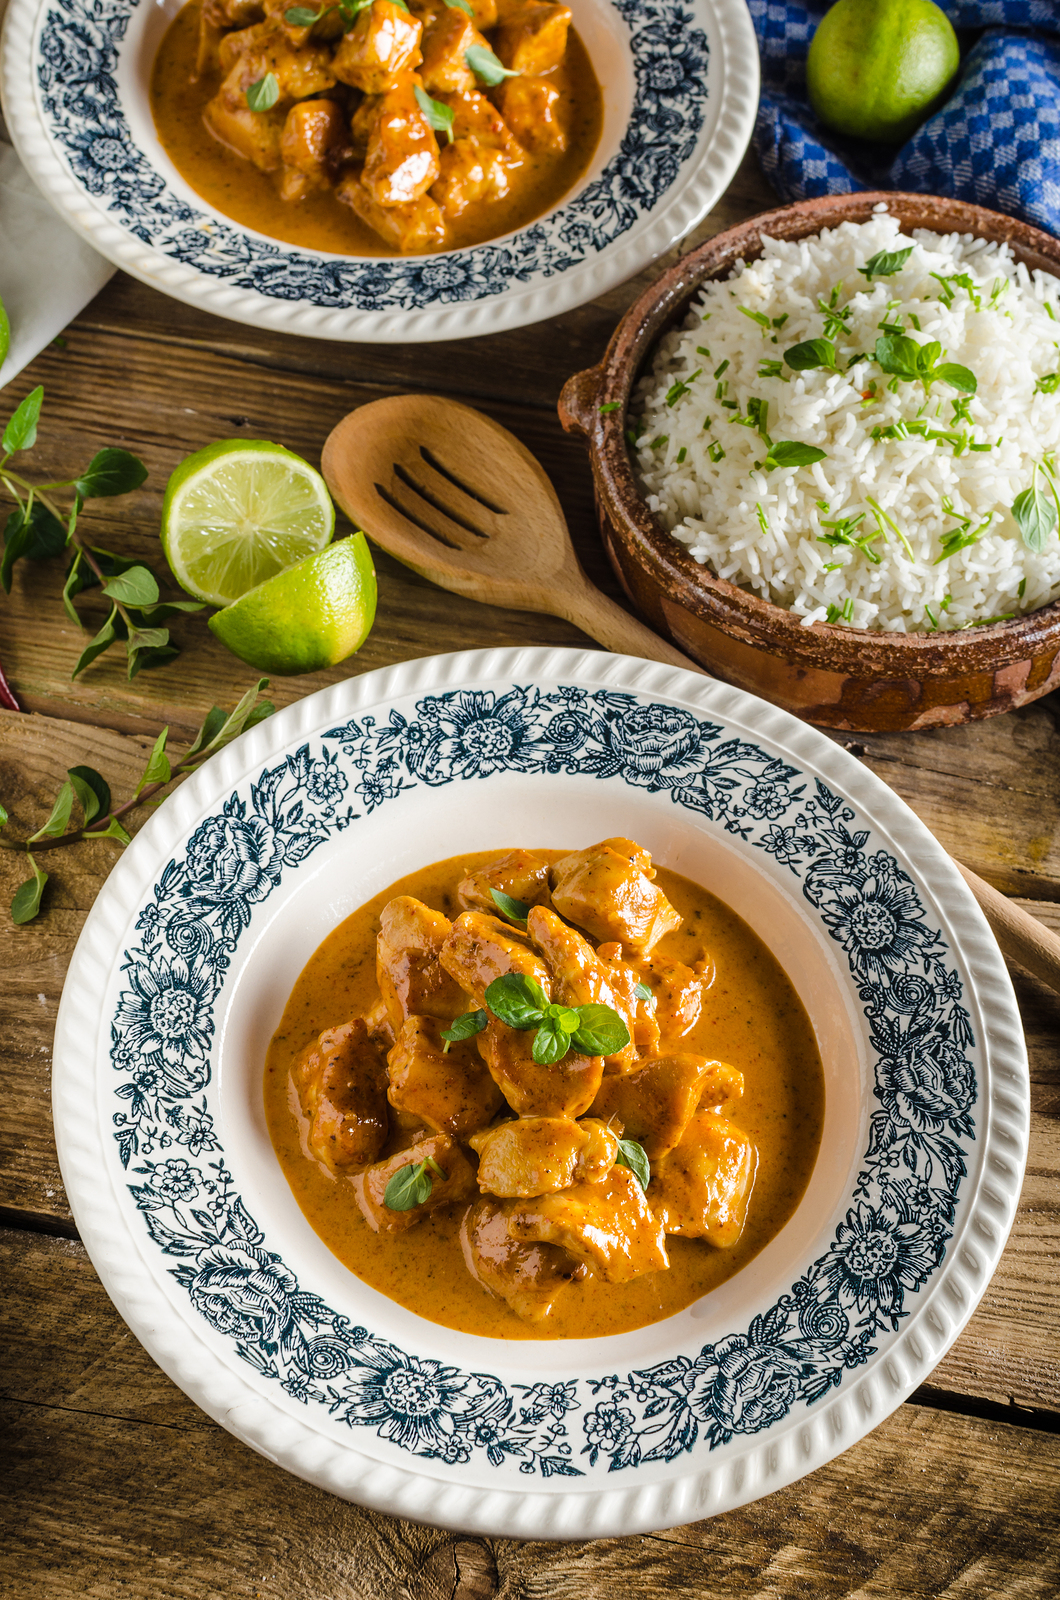 Curry Chicken Recipe. This chicken recipe is super tasty and delicious. Pin it now and make it later!